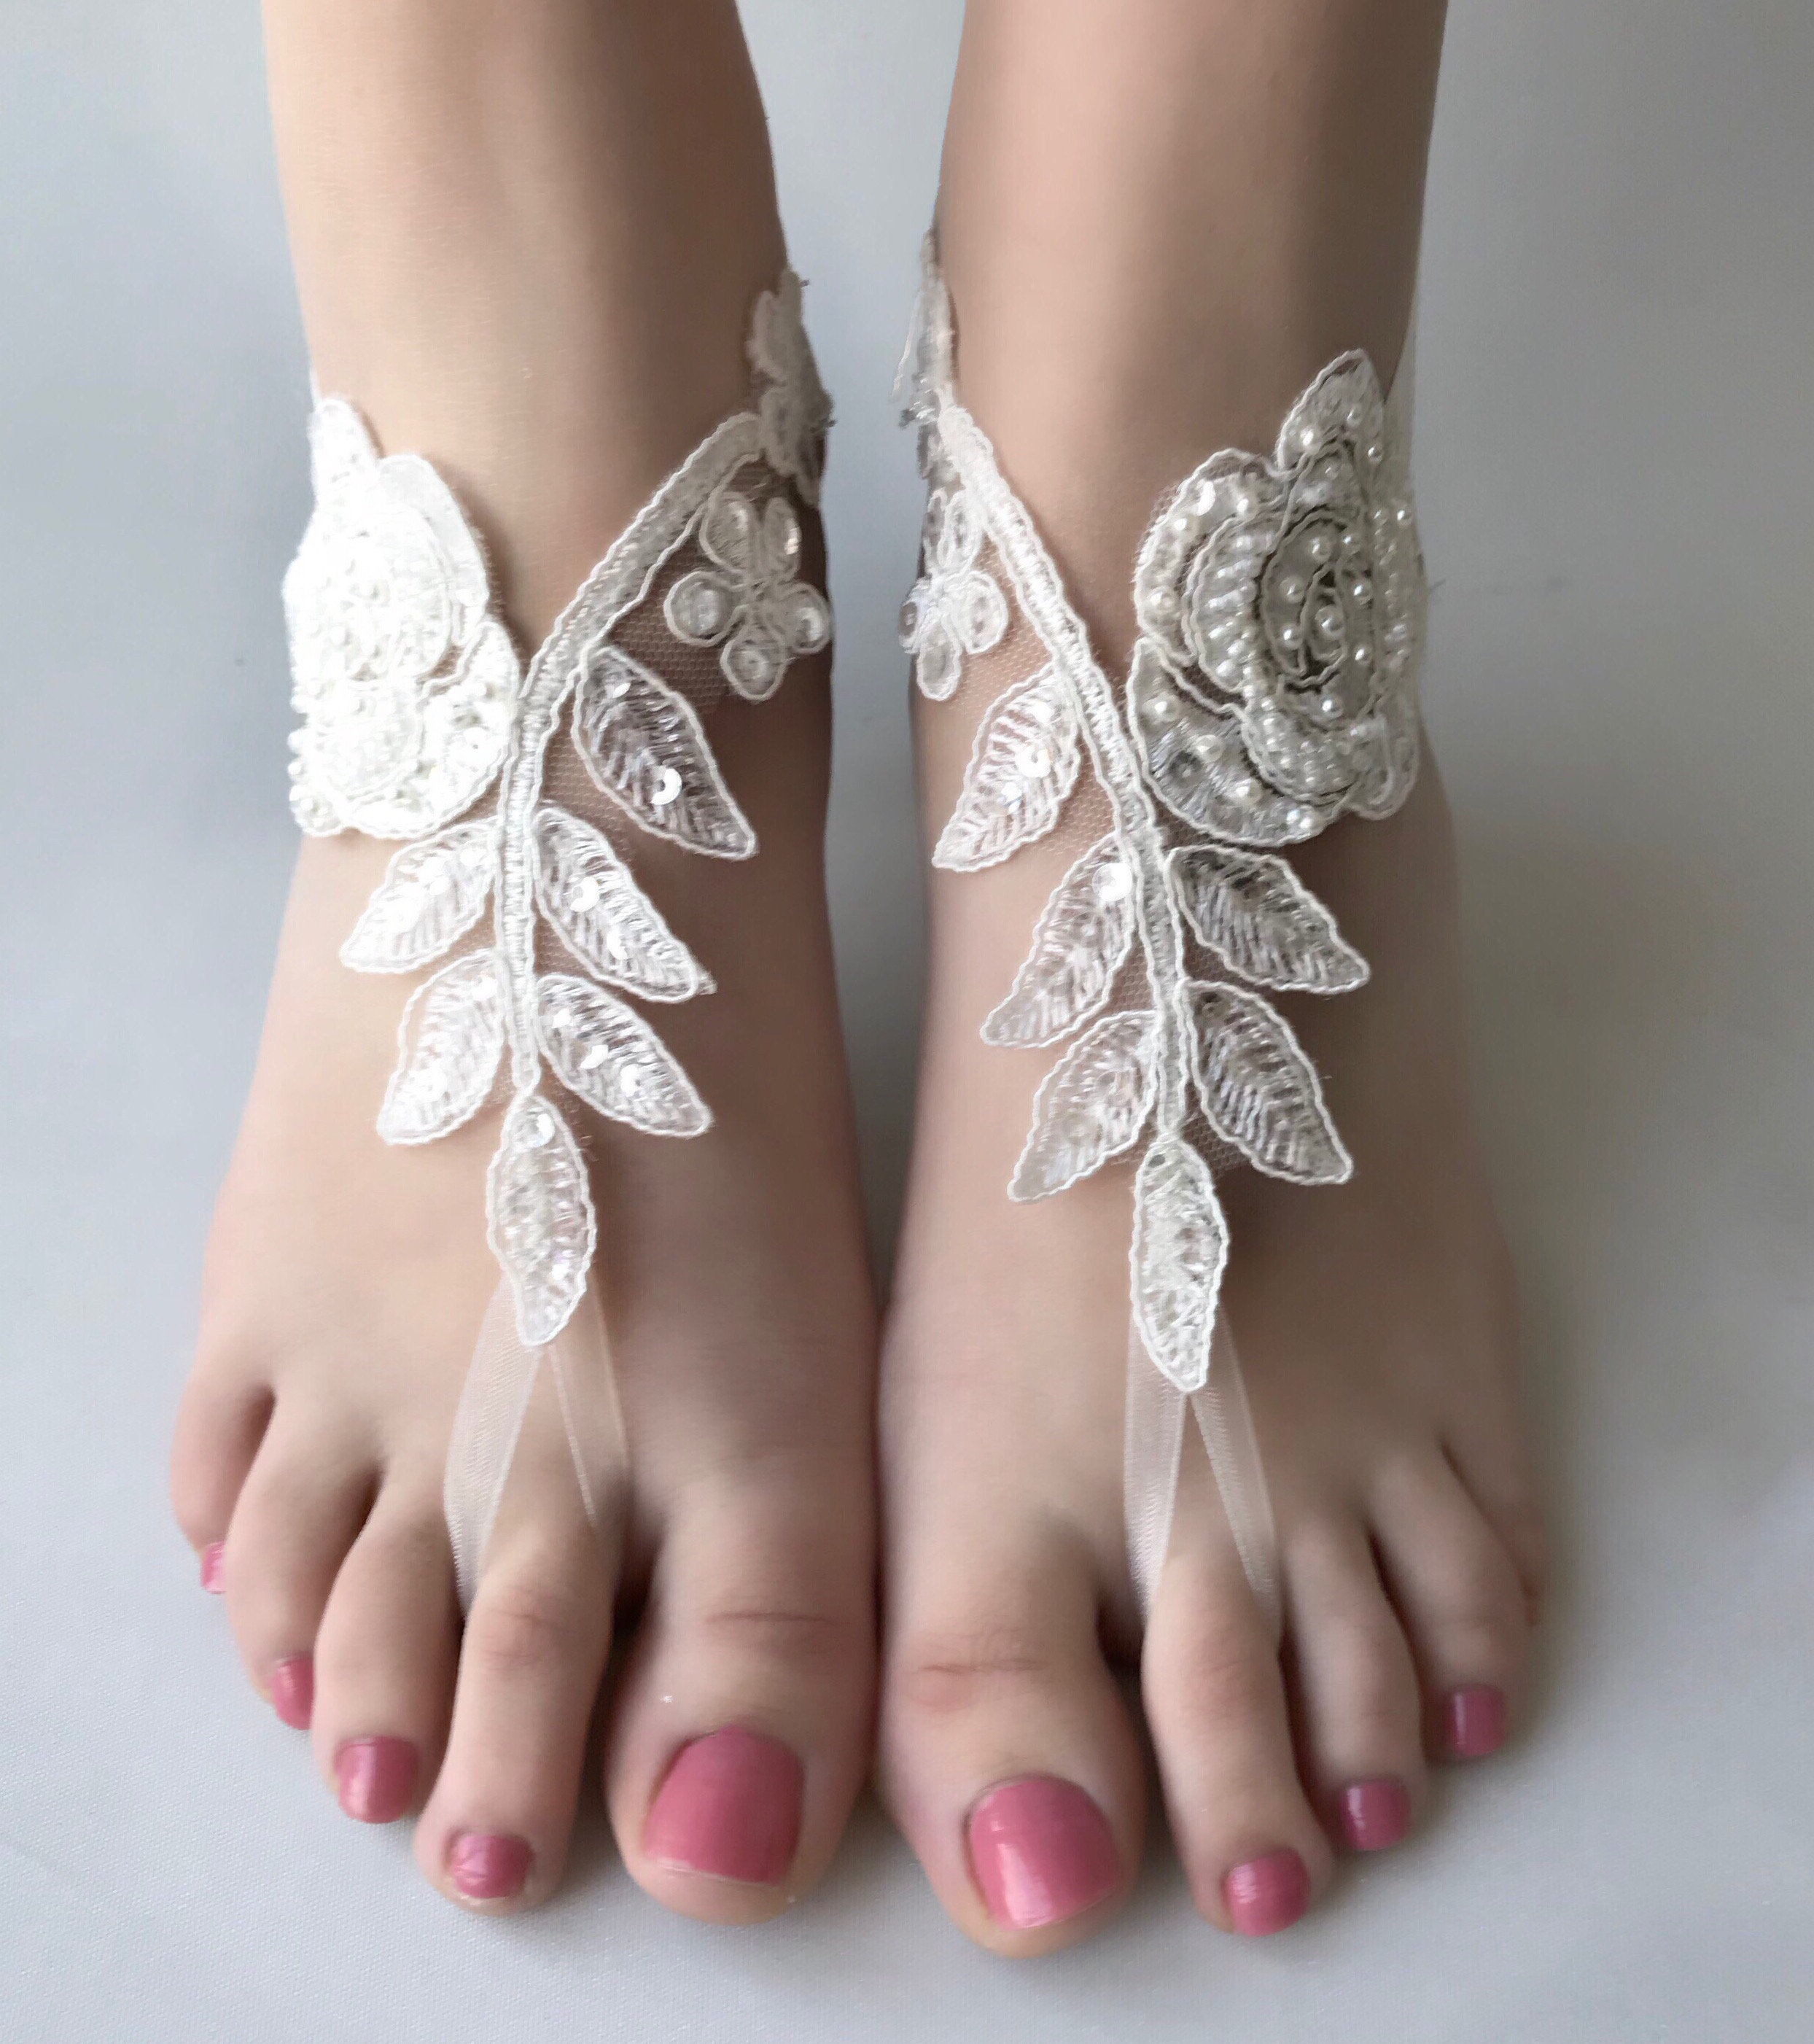 2132a2335c8f4 Ivory Beach wedding barefoot sandals wedding shoes prom party steampunk  bangle beach anklets bangles bride bridesmaid gift